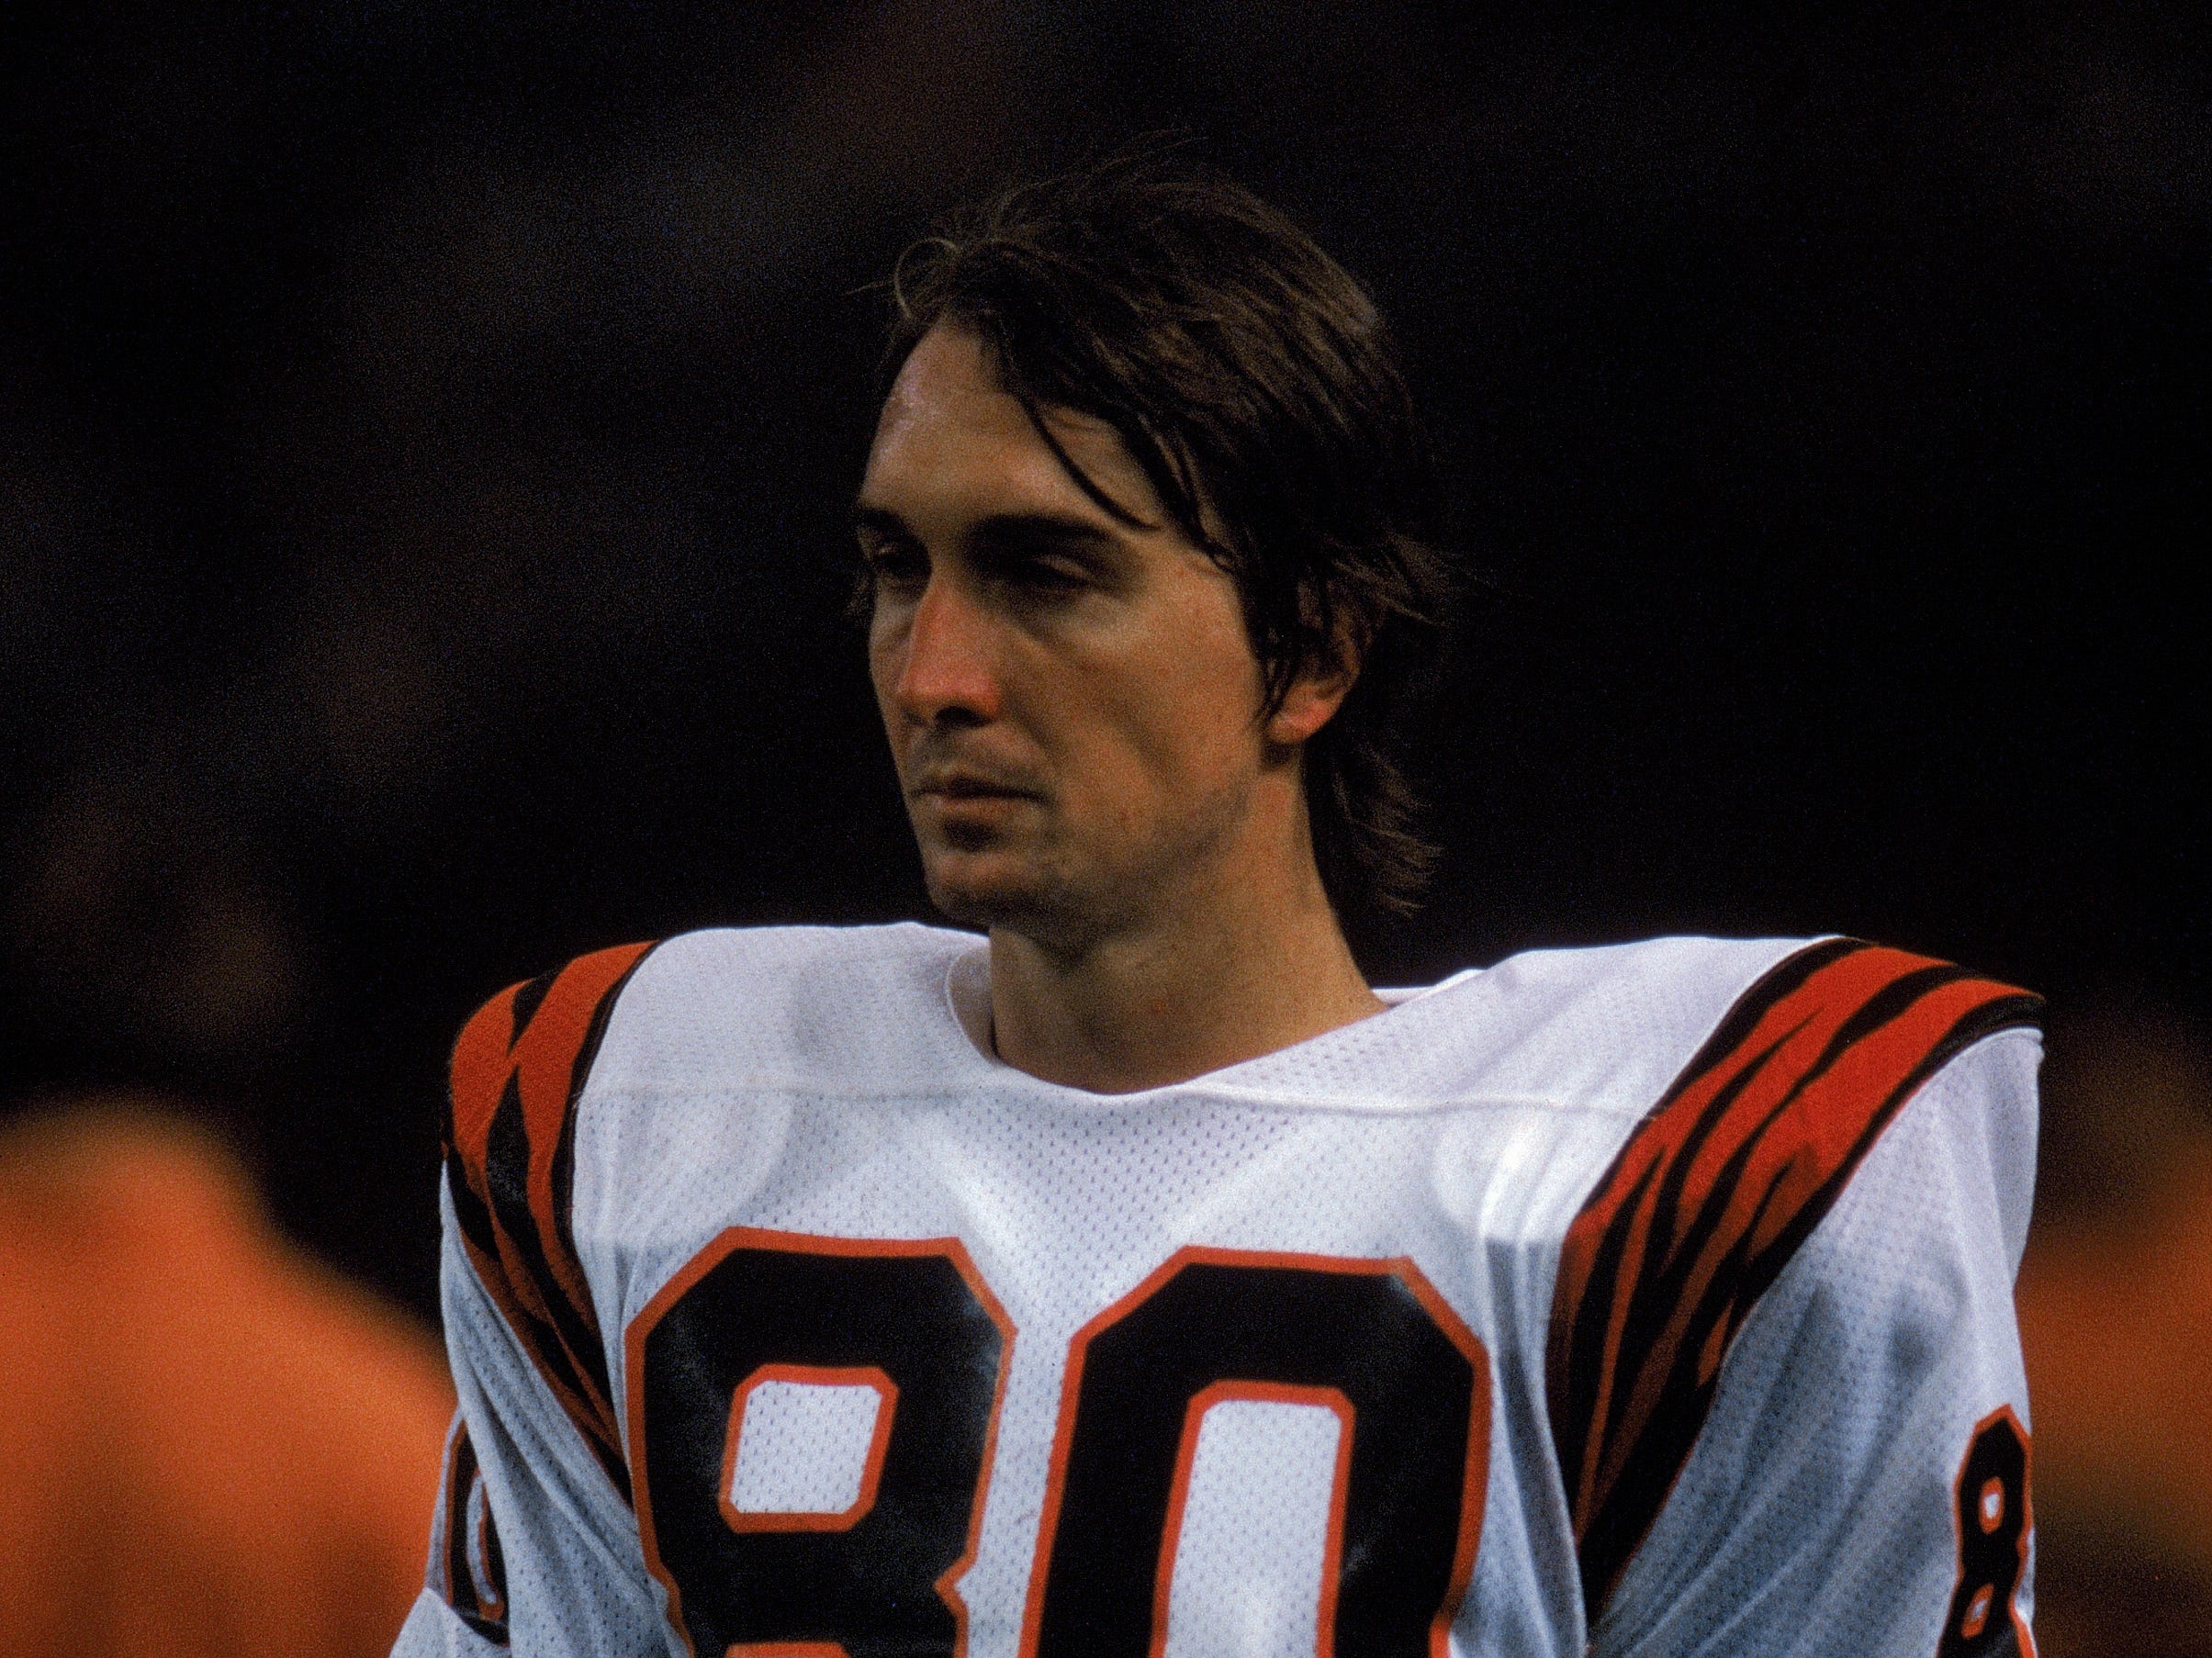 Astronaut product Cris Collinsworth, pictured before a 1985 NFL game at the Houston Astrodome, was a second-round Cincinnati Bengals choice in 1981.  (Photo by Tony Duffy/Getty Images)